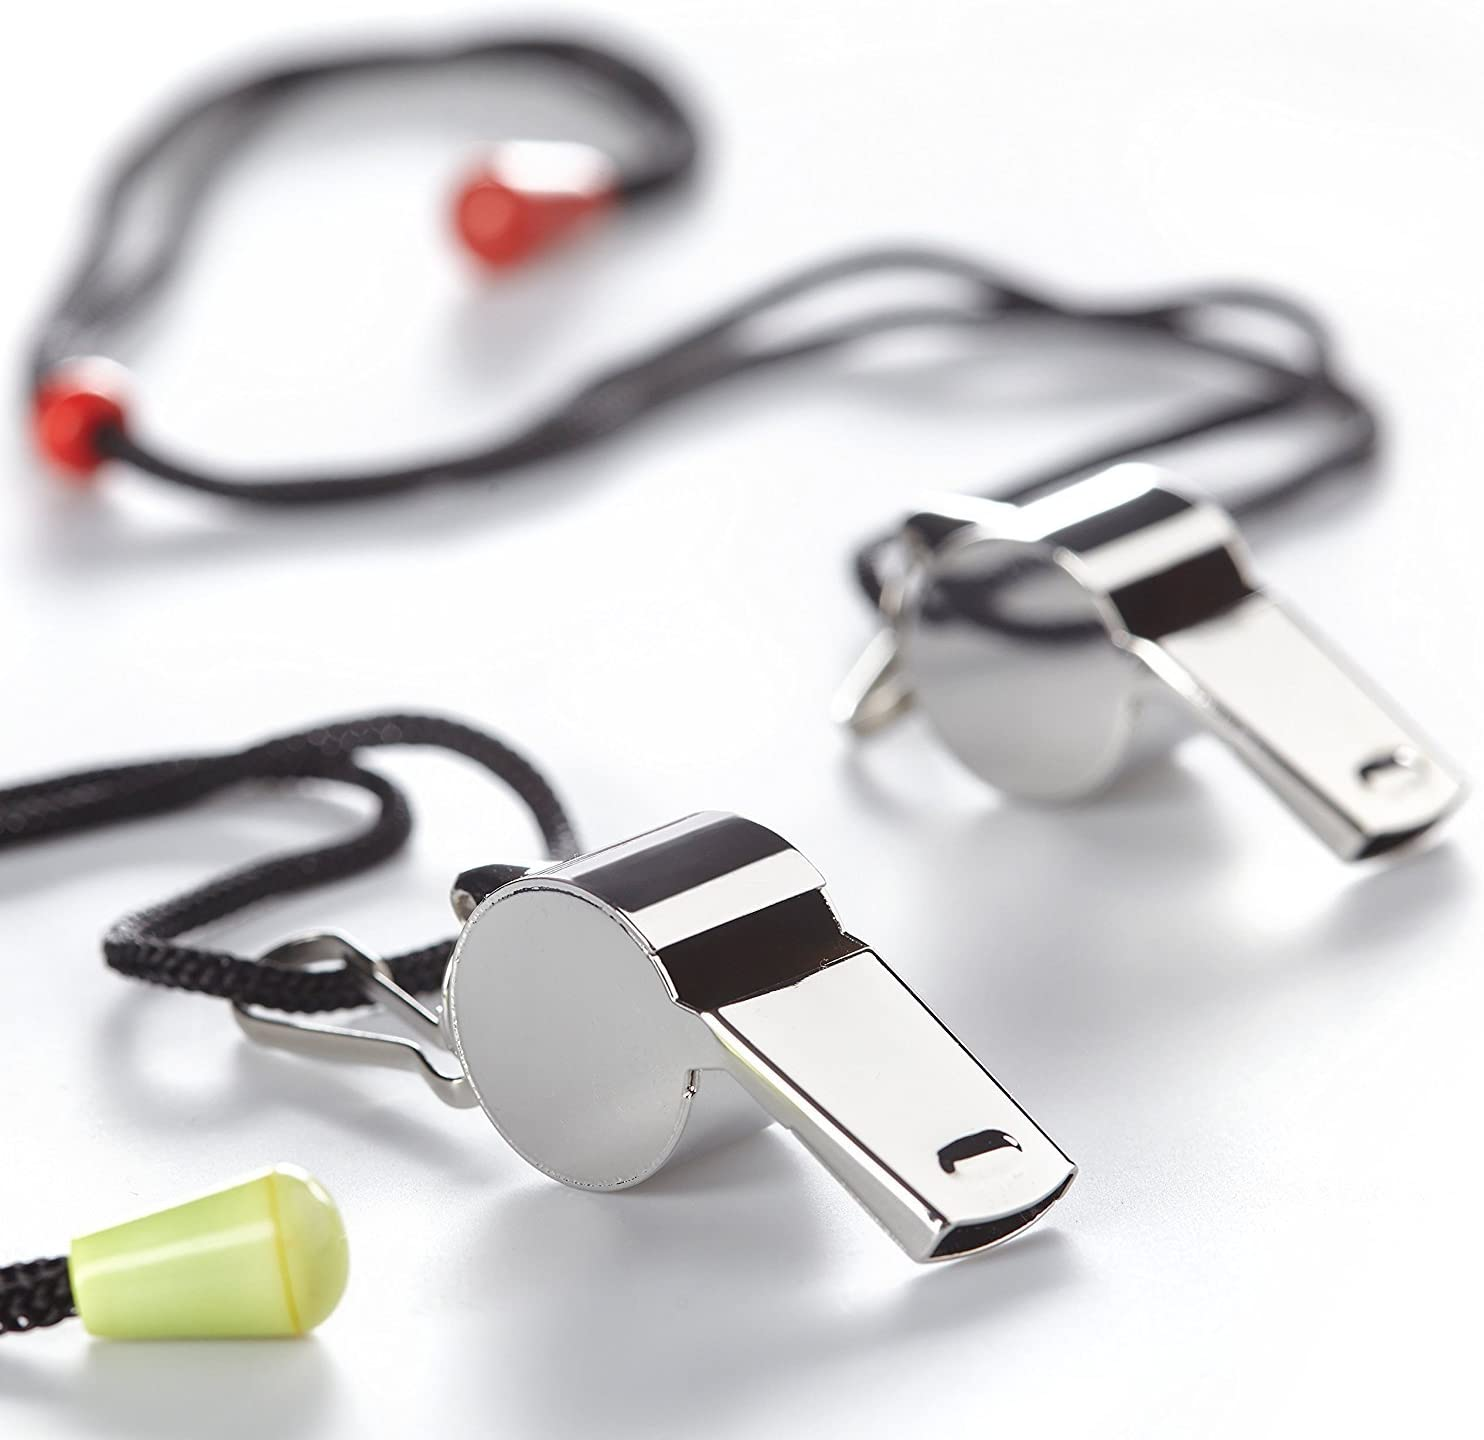 BusyBee Premium Coaches Referee Whistle with Lanyard (2 Pack) in a Funny Gift Pack. Voted #1 Equipment for Officials